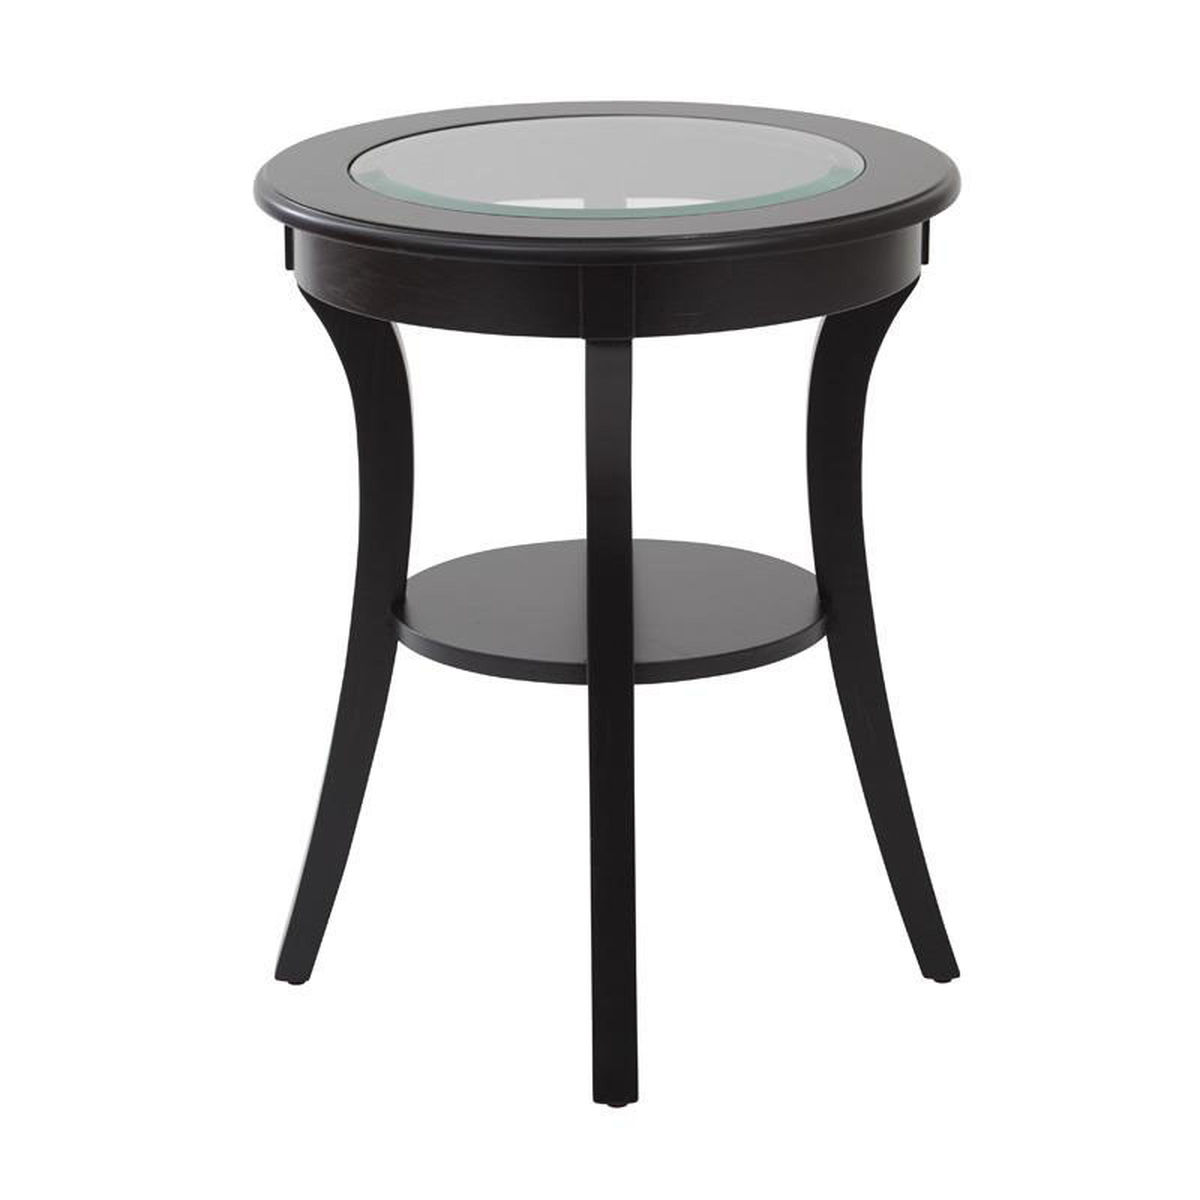 harper black glass accent table bizchair office star products round top our osp designs with wood finish and shelf cooler for drinks wooden legs lamp pier imports rugs wicker set